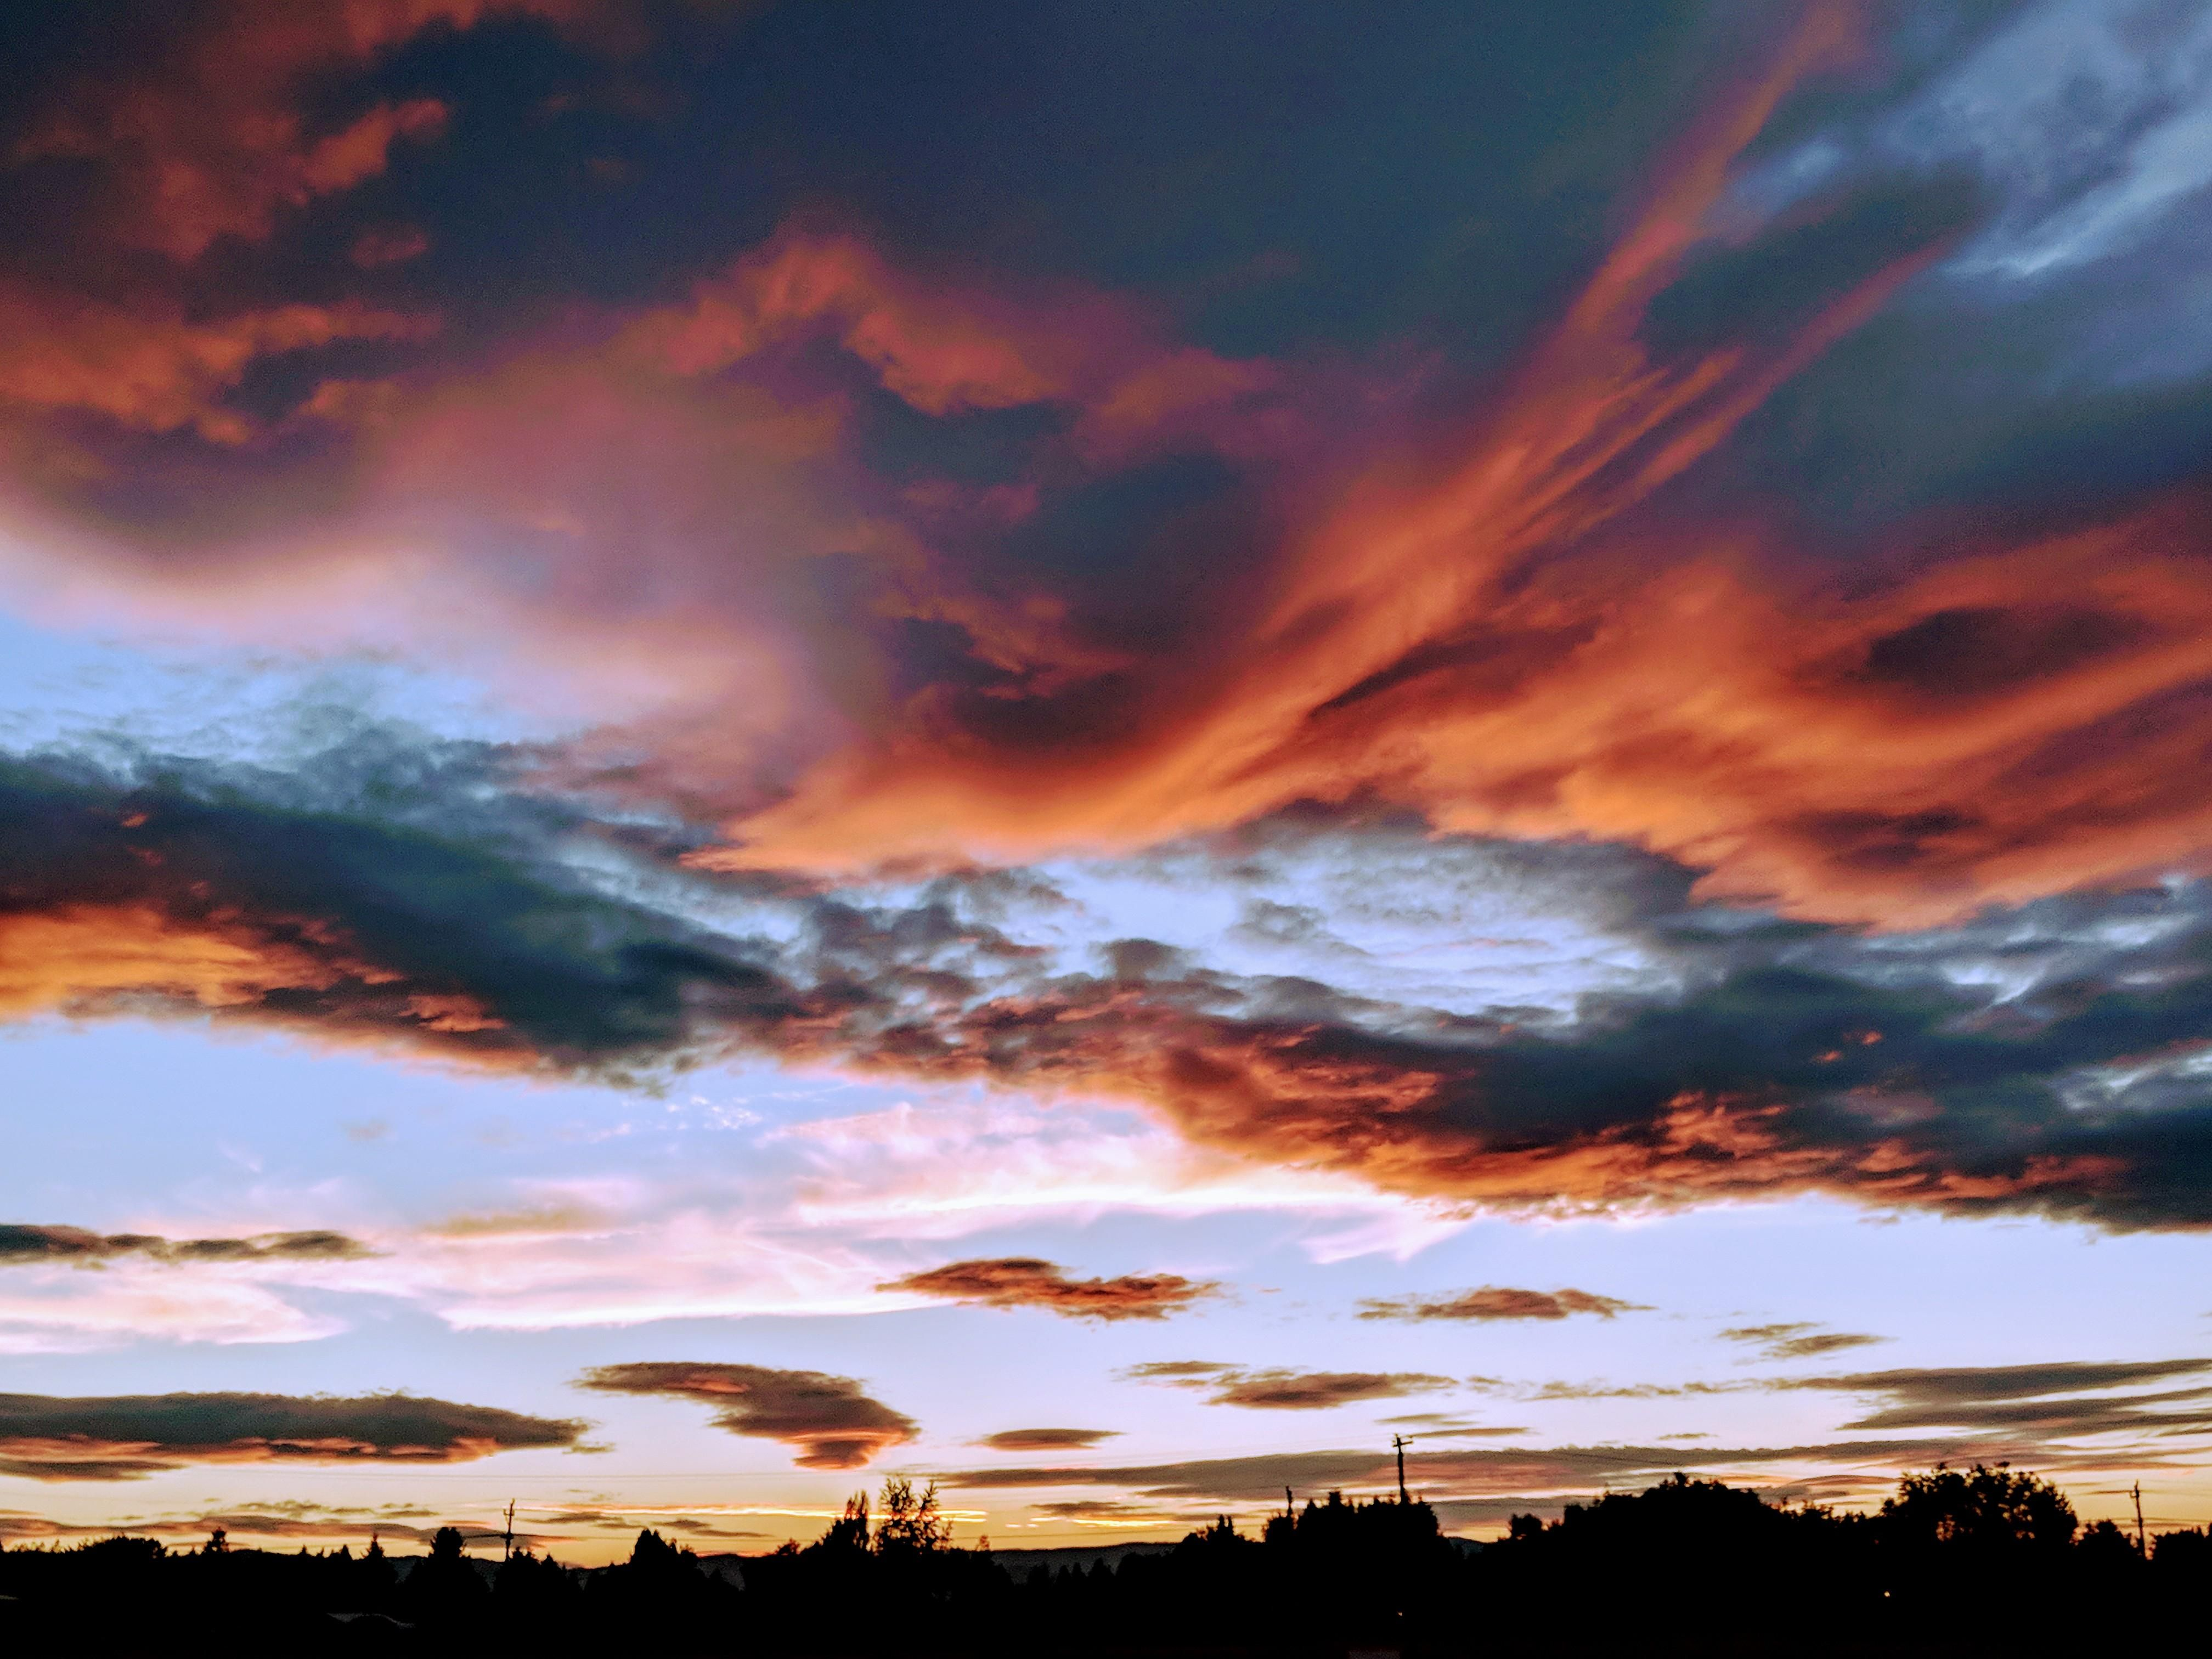 [OC] 4032 x 3024 A sunset over Evergreen MT (Taken with my